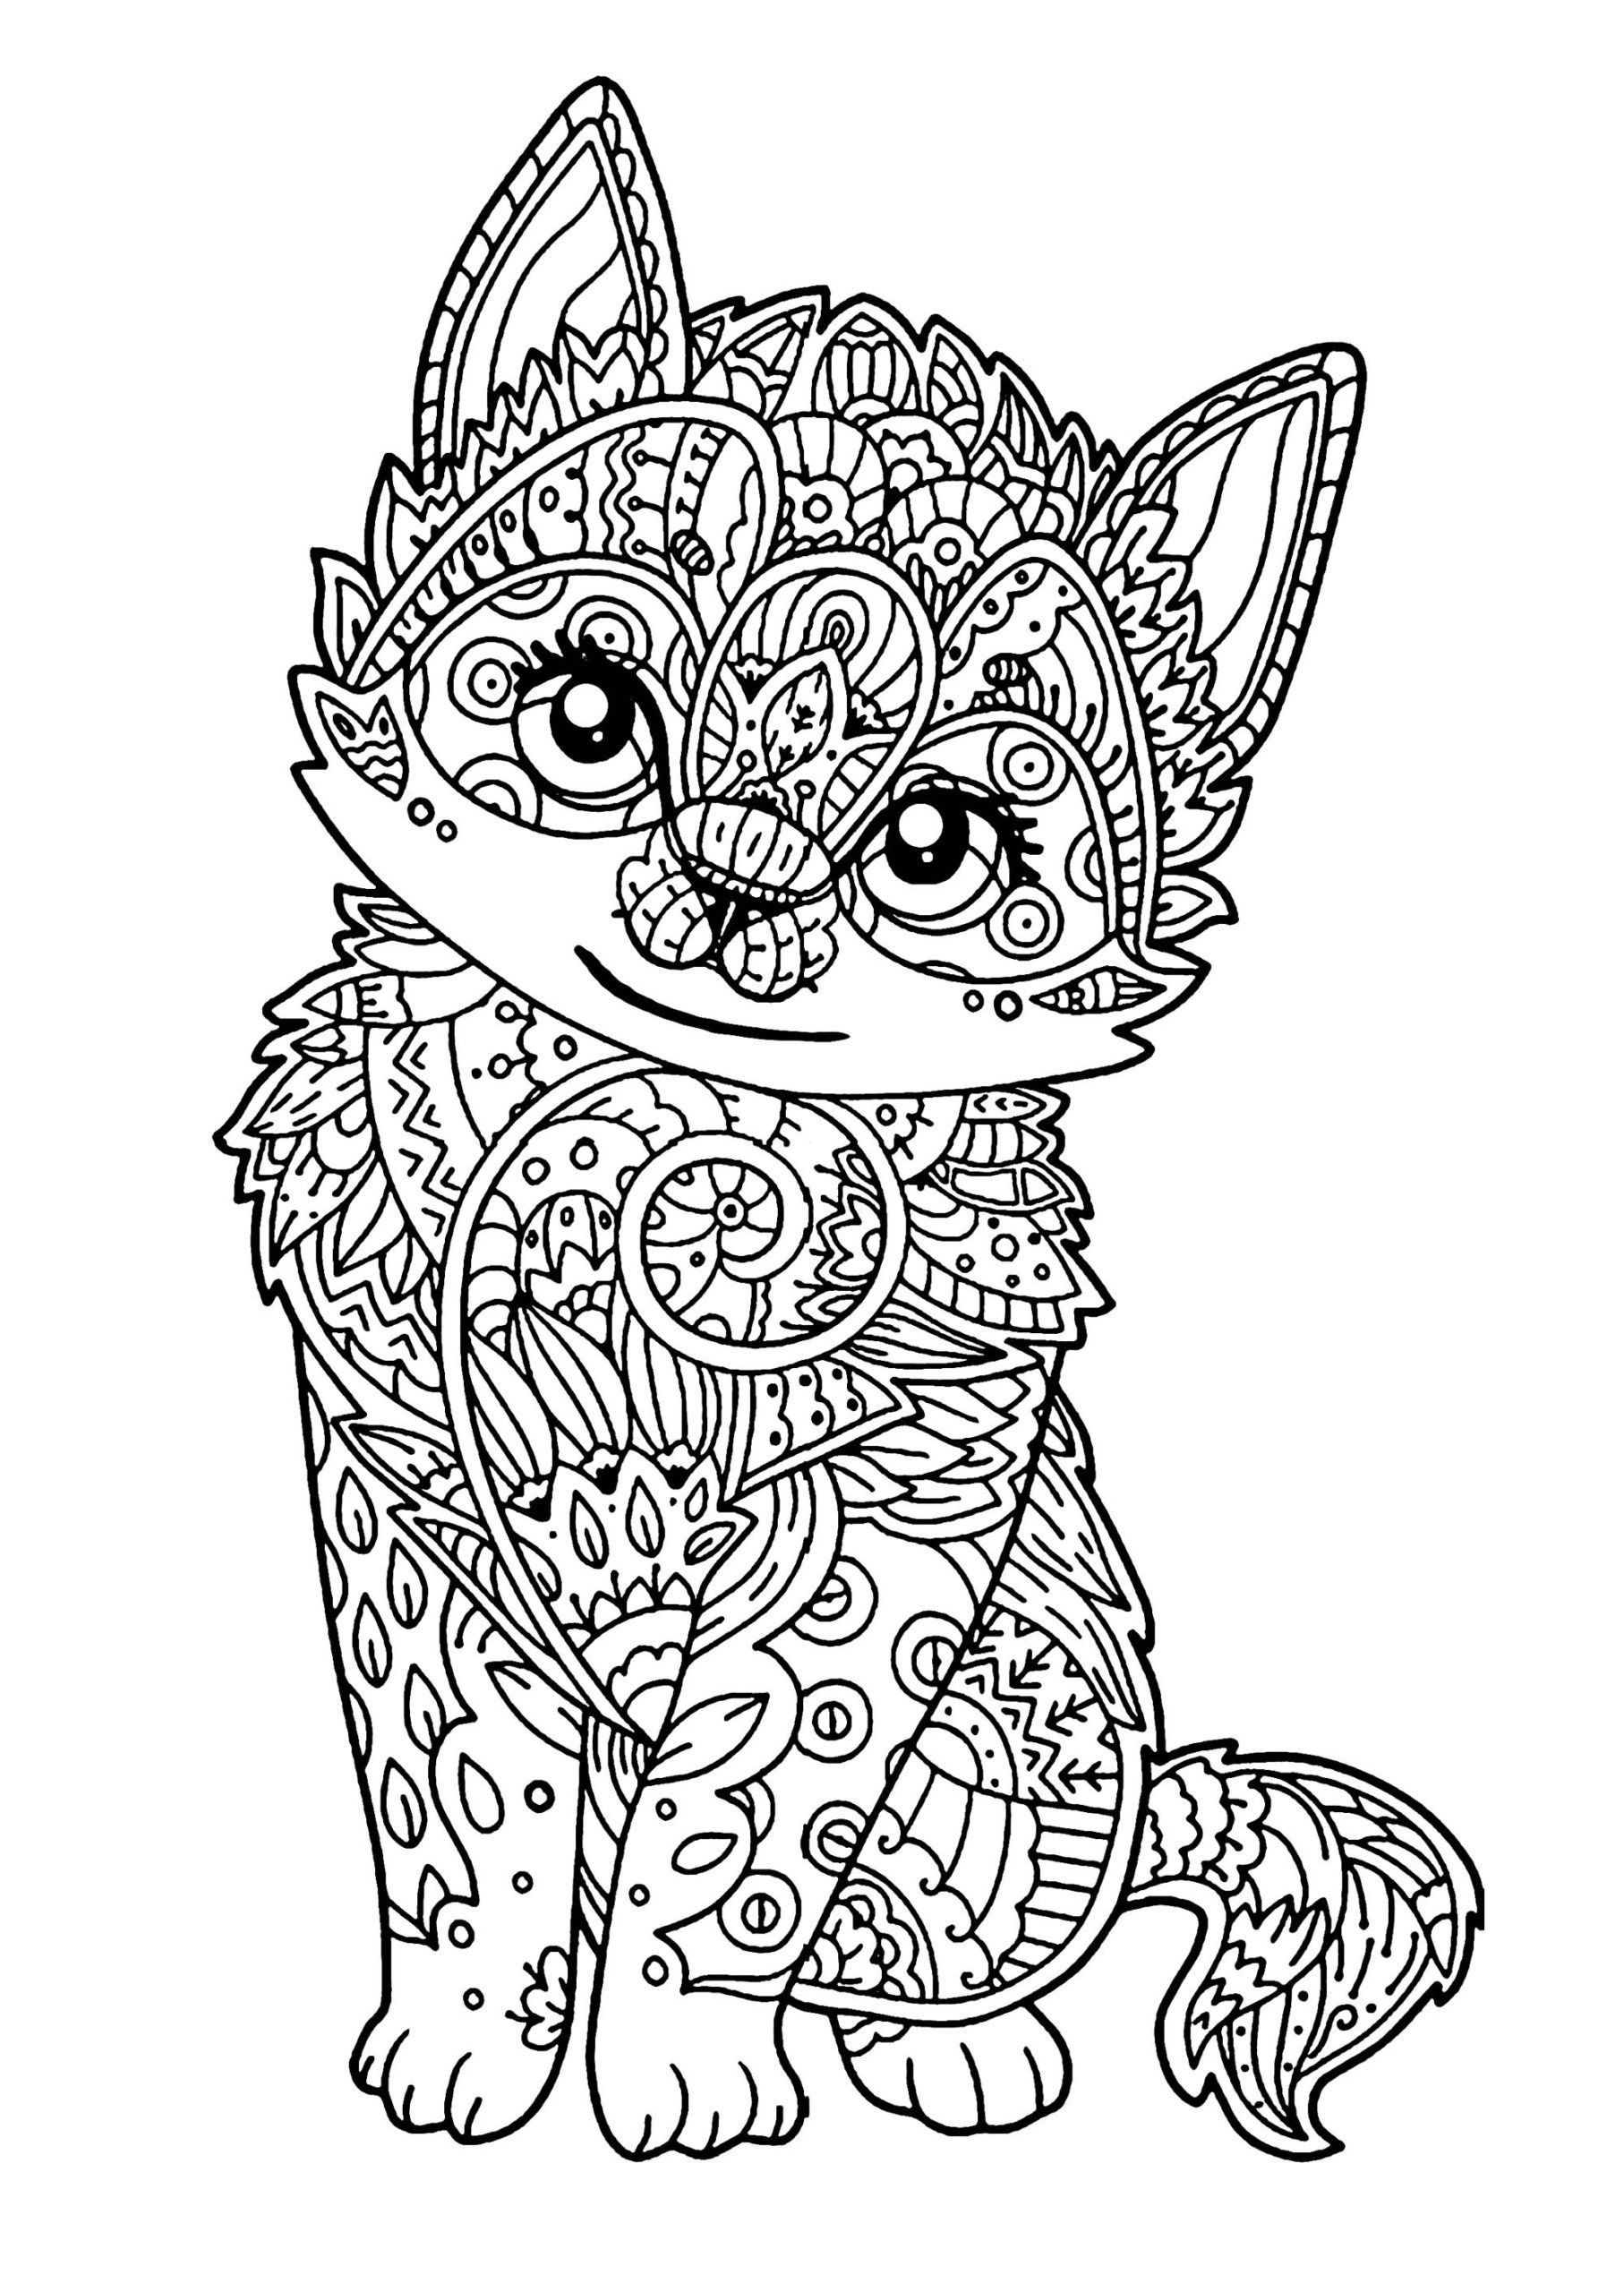 Unicorn Kitty Coloring Page Youngandtae Com Kitty Coloring Cat Coloring Page Animal Coloring Pages